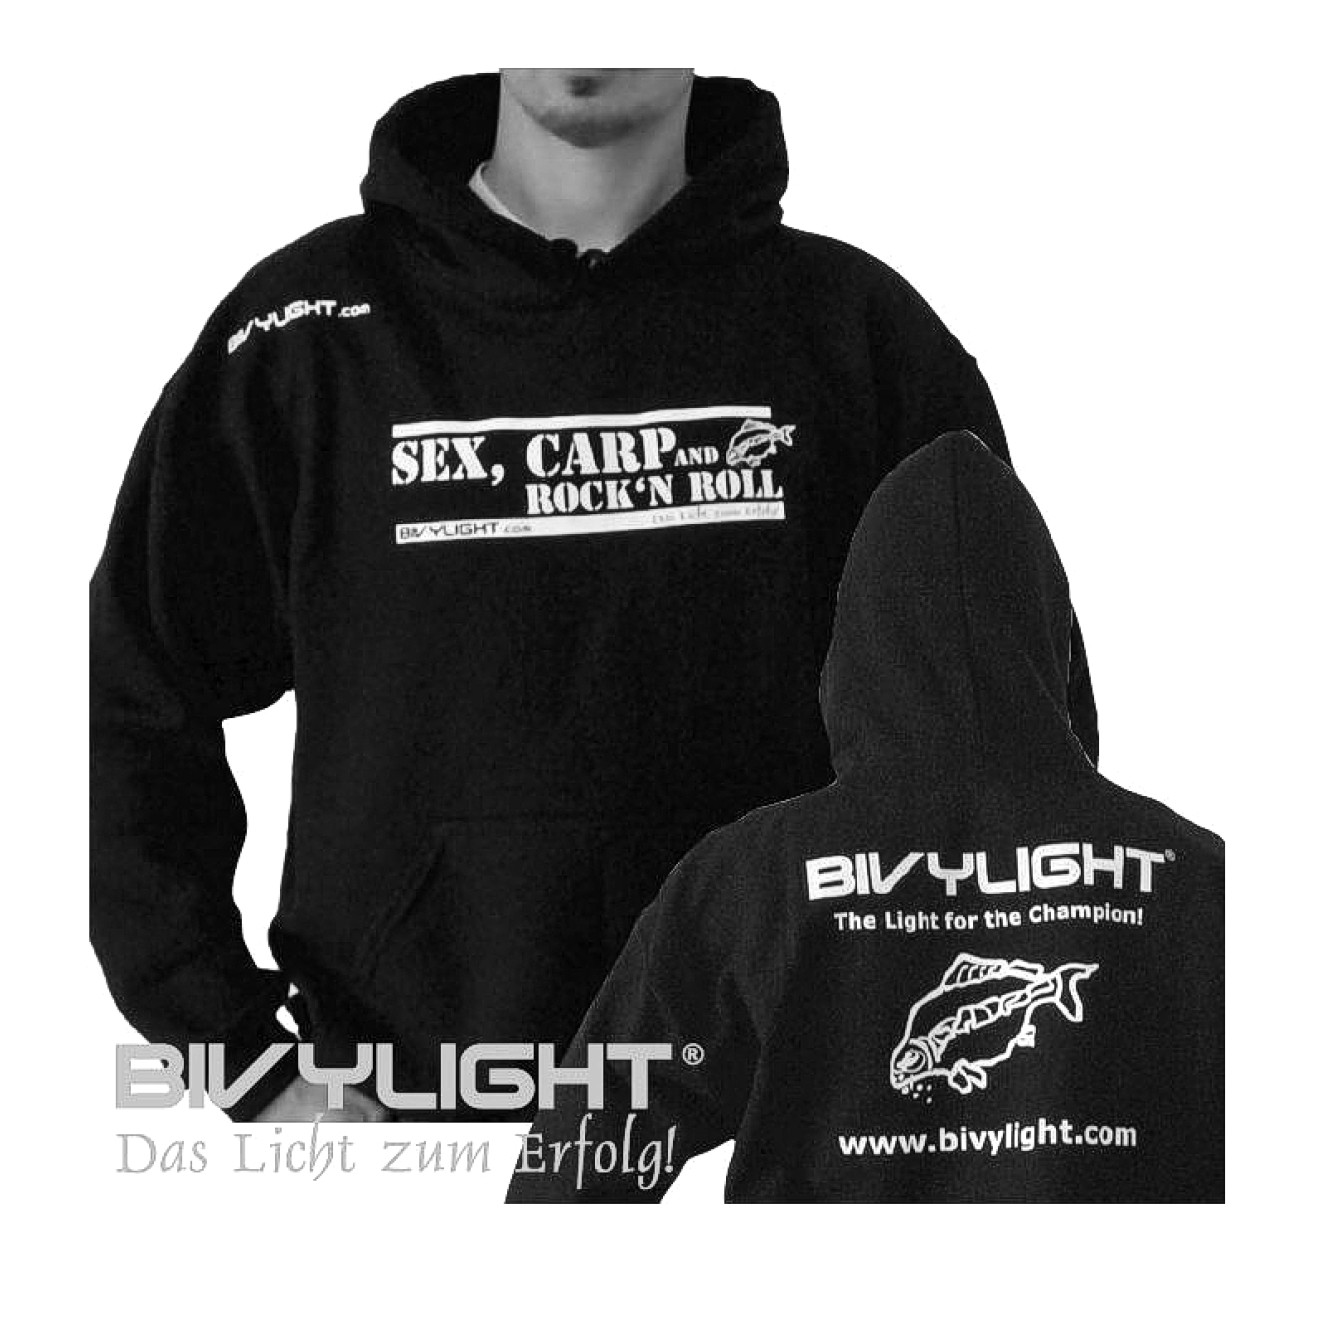 Bivylight Bundle - Sex, Carp and Rock'n Roll